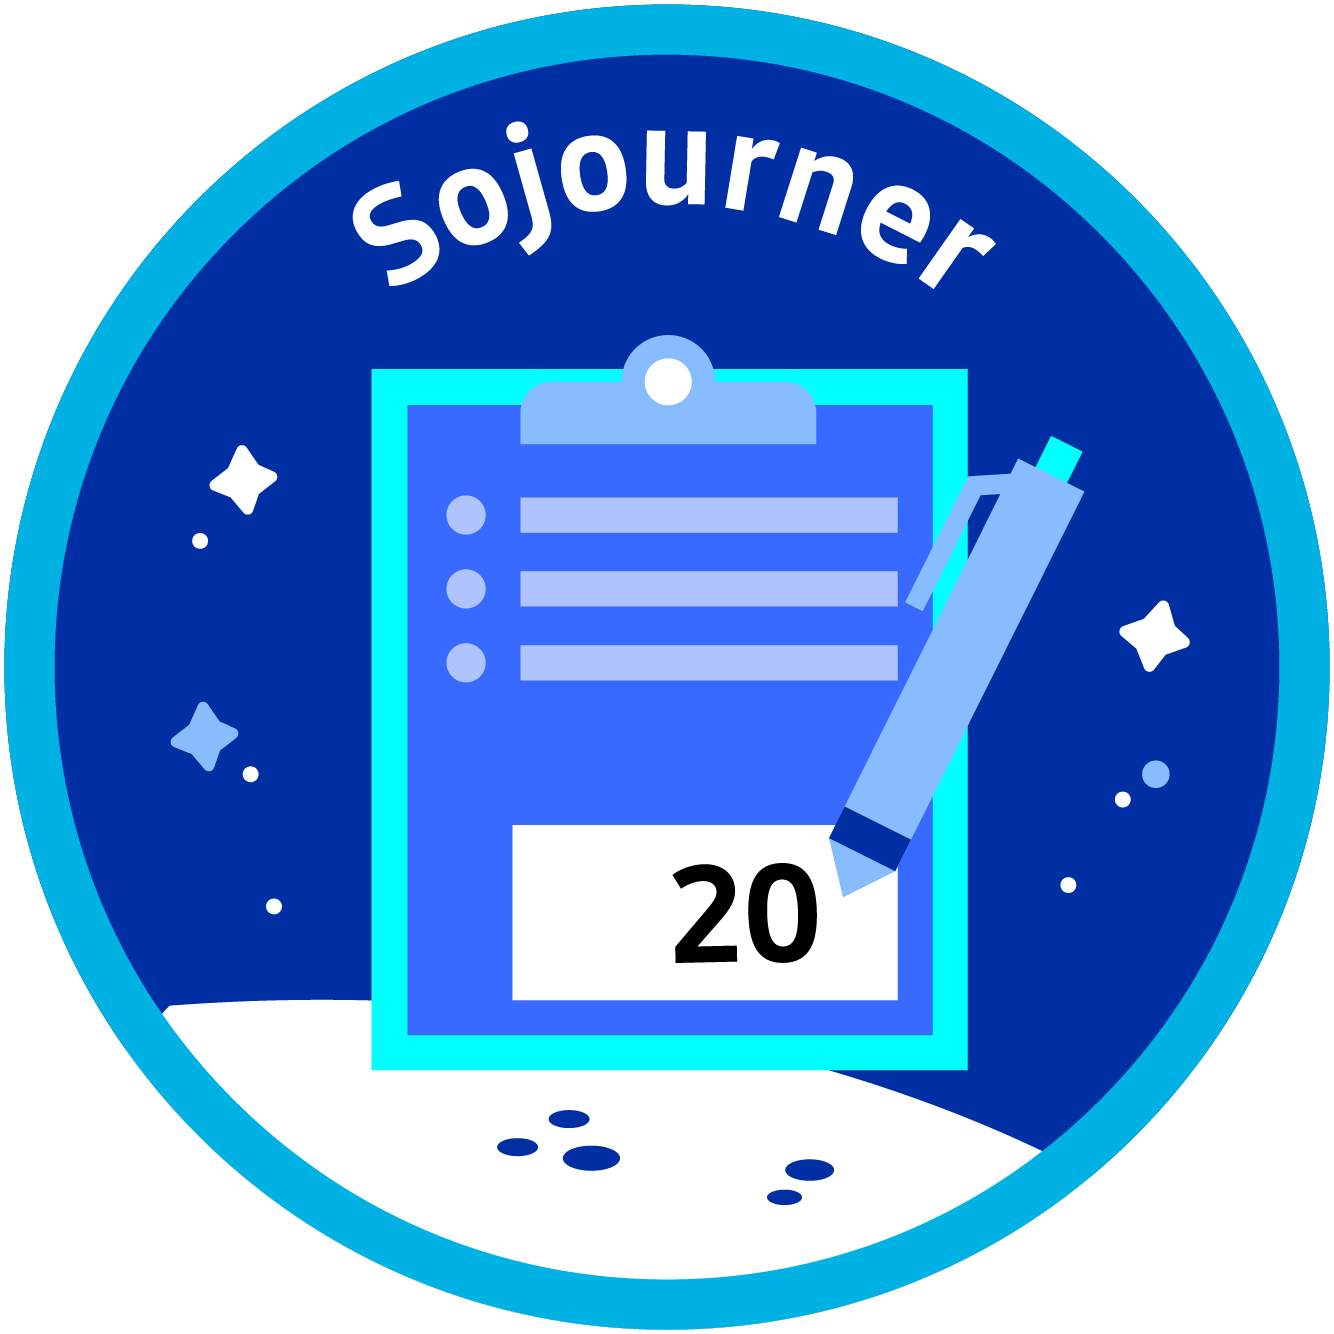 Sojourner